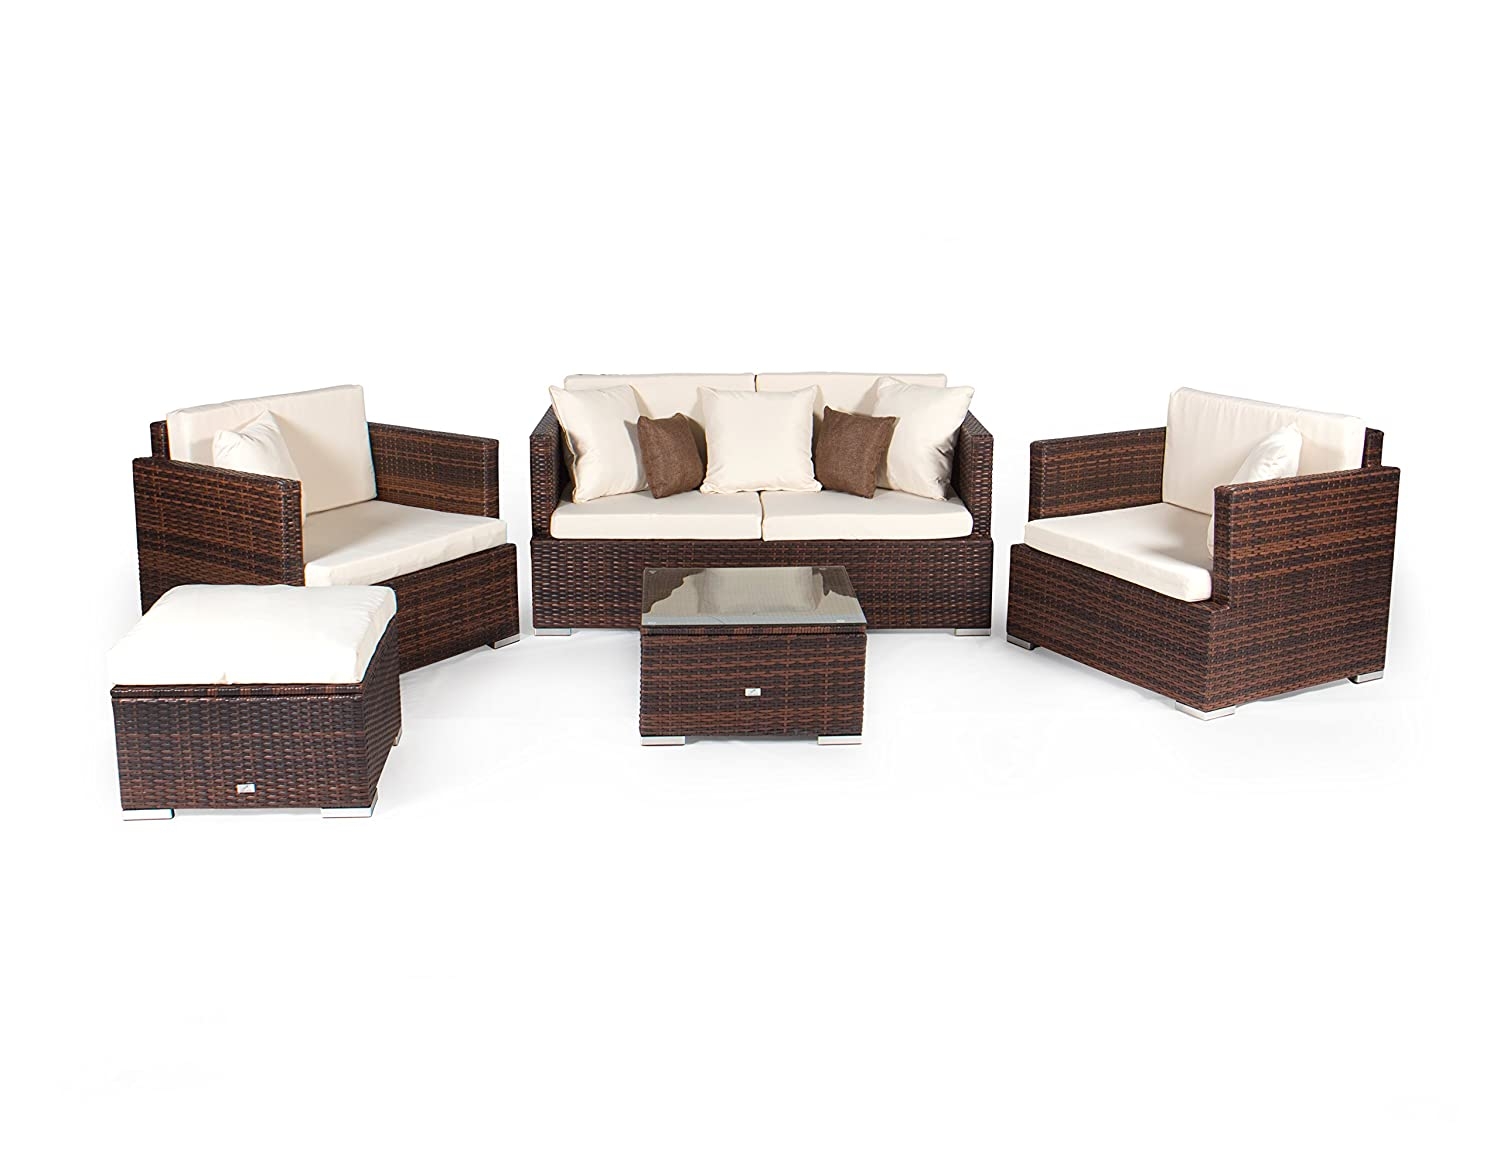 vanage gartenm bel set melbourne in rattan optik. Black Bedroom Furniture Sets. Home Design Ideas